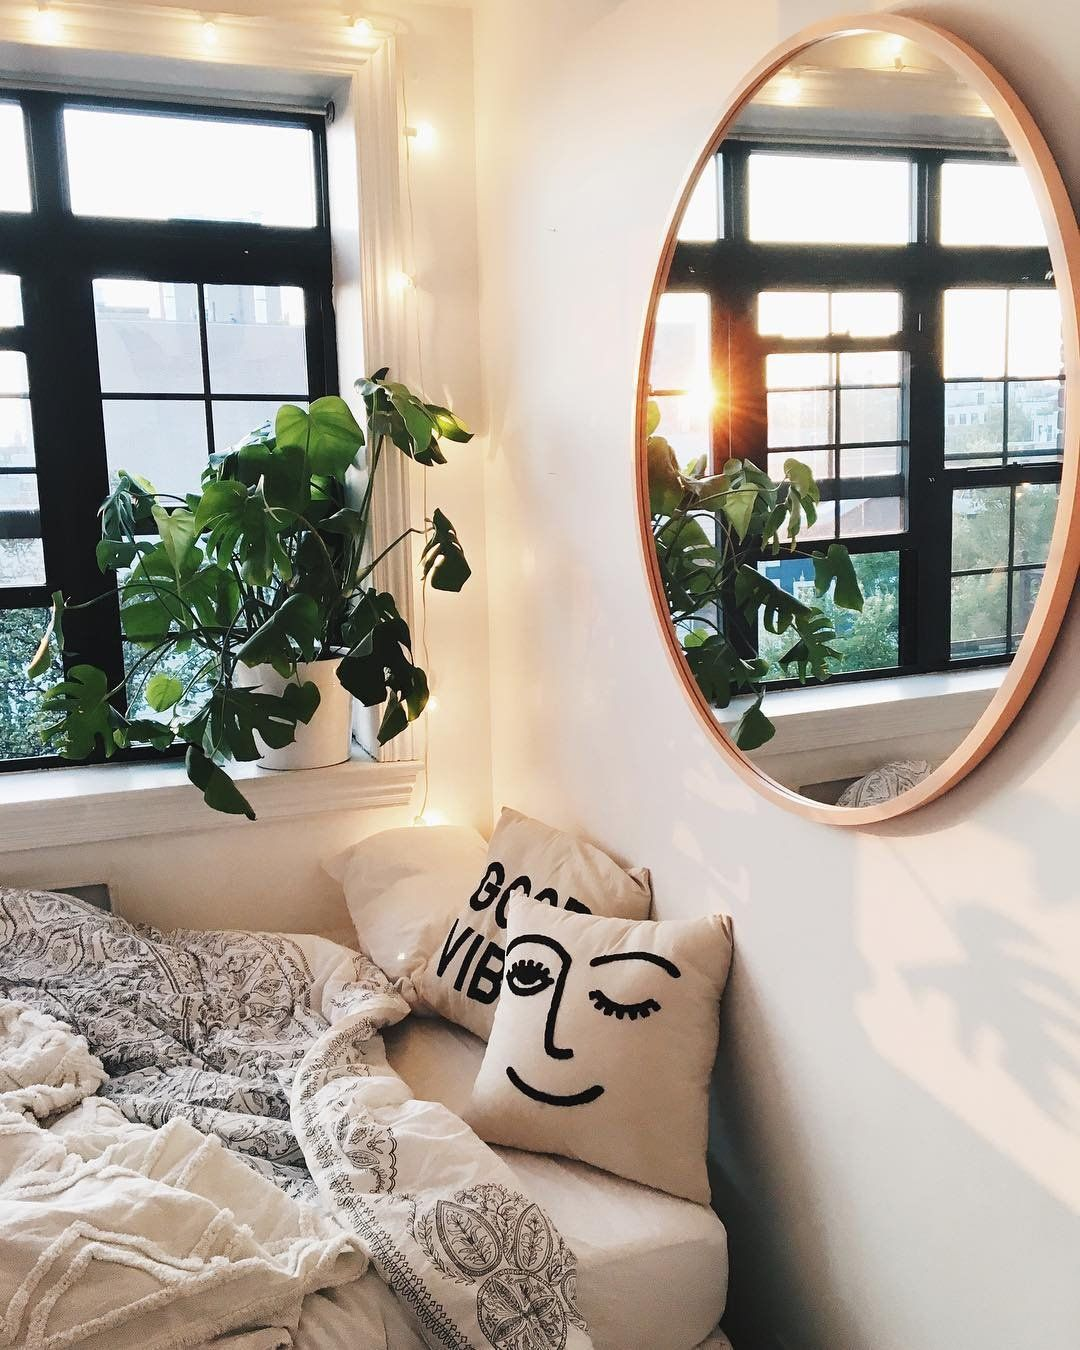 Apartment Interior With 4 Rooms: Pin By Urban Outfitters On Bedroom